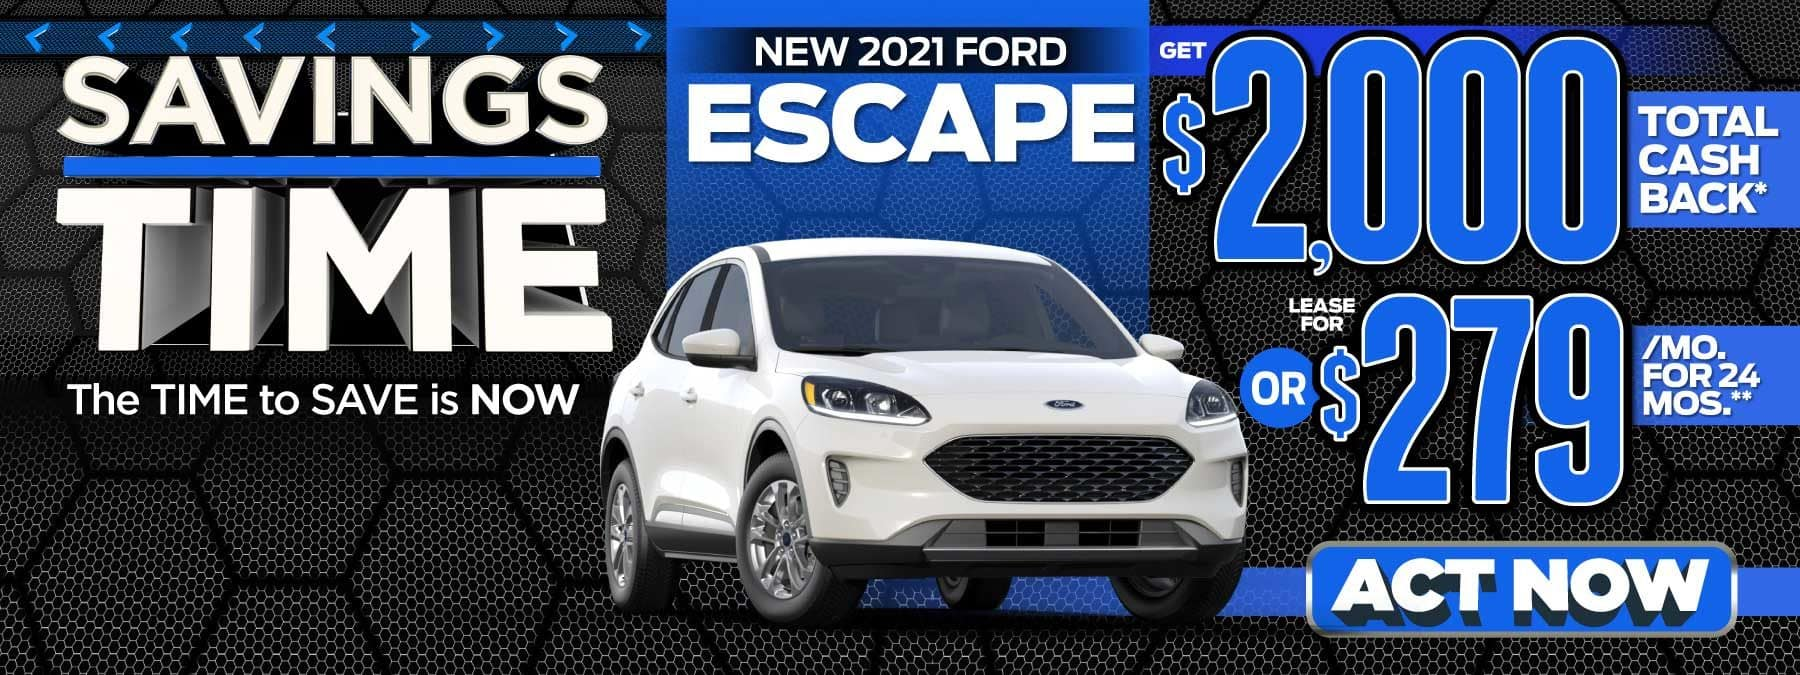 New 2021 Ford Escape - Get $2,000 total cash back - Act Now